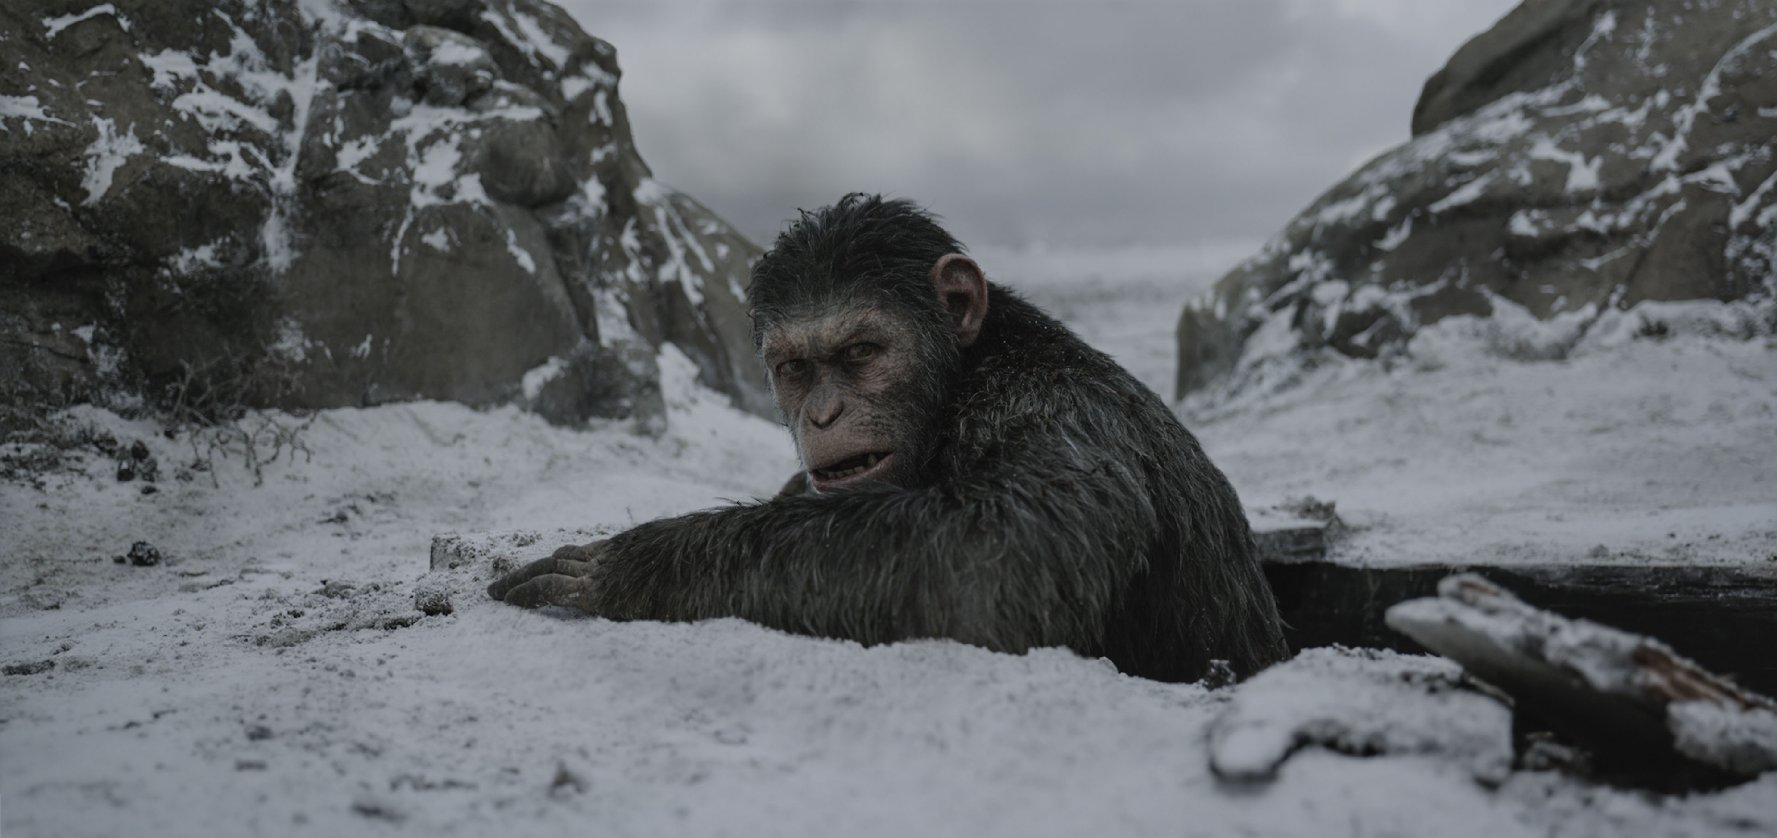 9. WAR FOR THE PLANET OF THE APES | Directed by Matt Reeves | Release Date: July 14, 2017   People expected a summer action movie blockbuster and, instead, for this  War , director Matt Reeves has delivered something unforgettable and truly special – a blistering, dark, visceral rumination on war, loyalty, and sacrifice. For some this will be grim, dark, and unrelenting. You will want a gulp of fresh air afterwards, and maybe sit quietly with a beverage of your choice and not think about all of this for a good, long while.  But this is one of 2017's best films, though it may offer minimal light and fleeting levity. Reeves delivers an experience full of gripping, knuckle-white potency, with a breathtaking risk of violence and danger in and around every scene. As Caesar, Andy Serkis' motion-capture work is extraordinary, and he delivers a performance that rivals the best work of any actor we watched all year.  War is not warm. Seldom, if ever, is it kind. Heroism can exist in challenging and unconscionable environments.  War for the Planet of the Apes  dutifully ends this new  Planet of the Apes  trilogy in a strong and demanding way. This is a compelling film, unforgettable and cold to the touch. However, just like a character in the film who allows themselves to shed a single, solitary tear at the film's conclusion, this is a journey and finale I am thrilled to have taken.